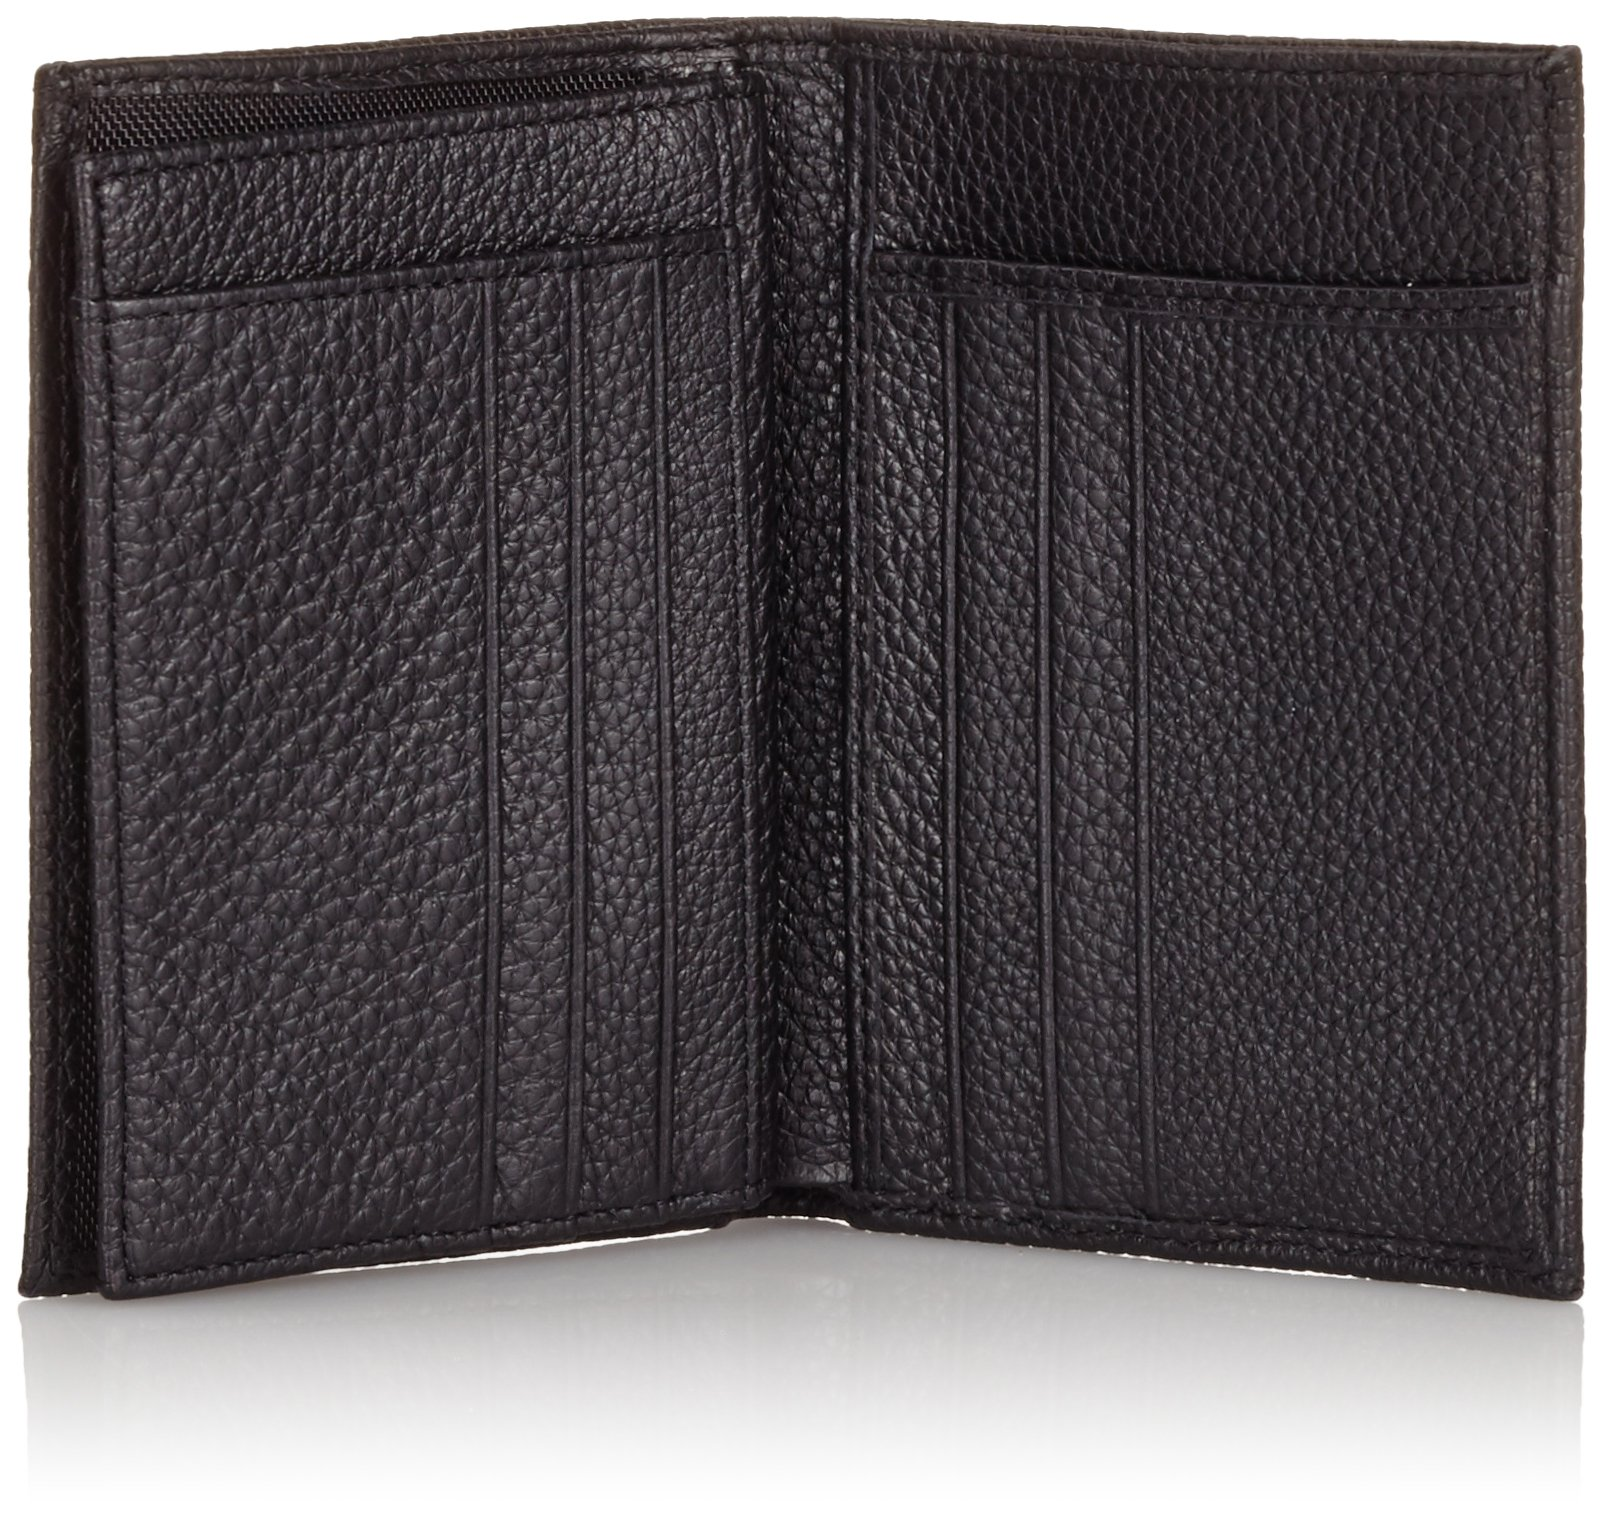 Piquadro Man's Wallet In Leather, Black 1129MO, One Size